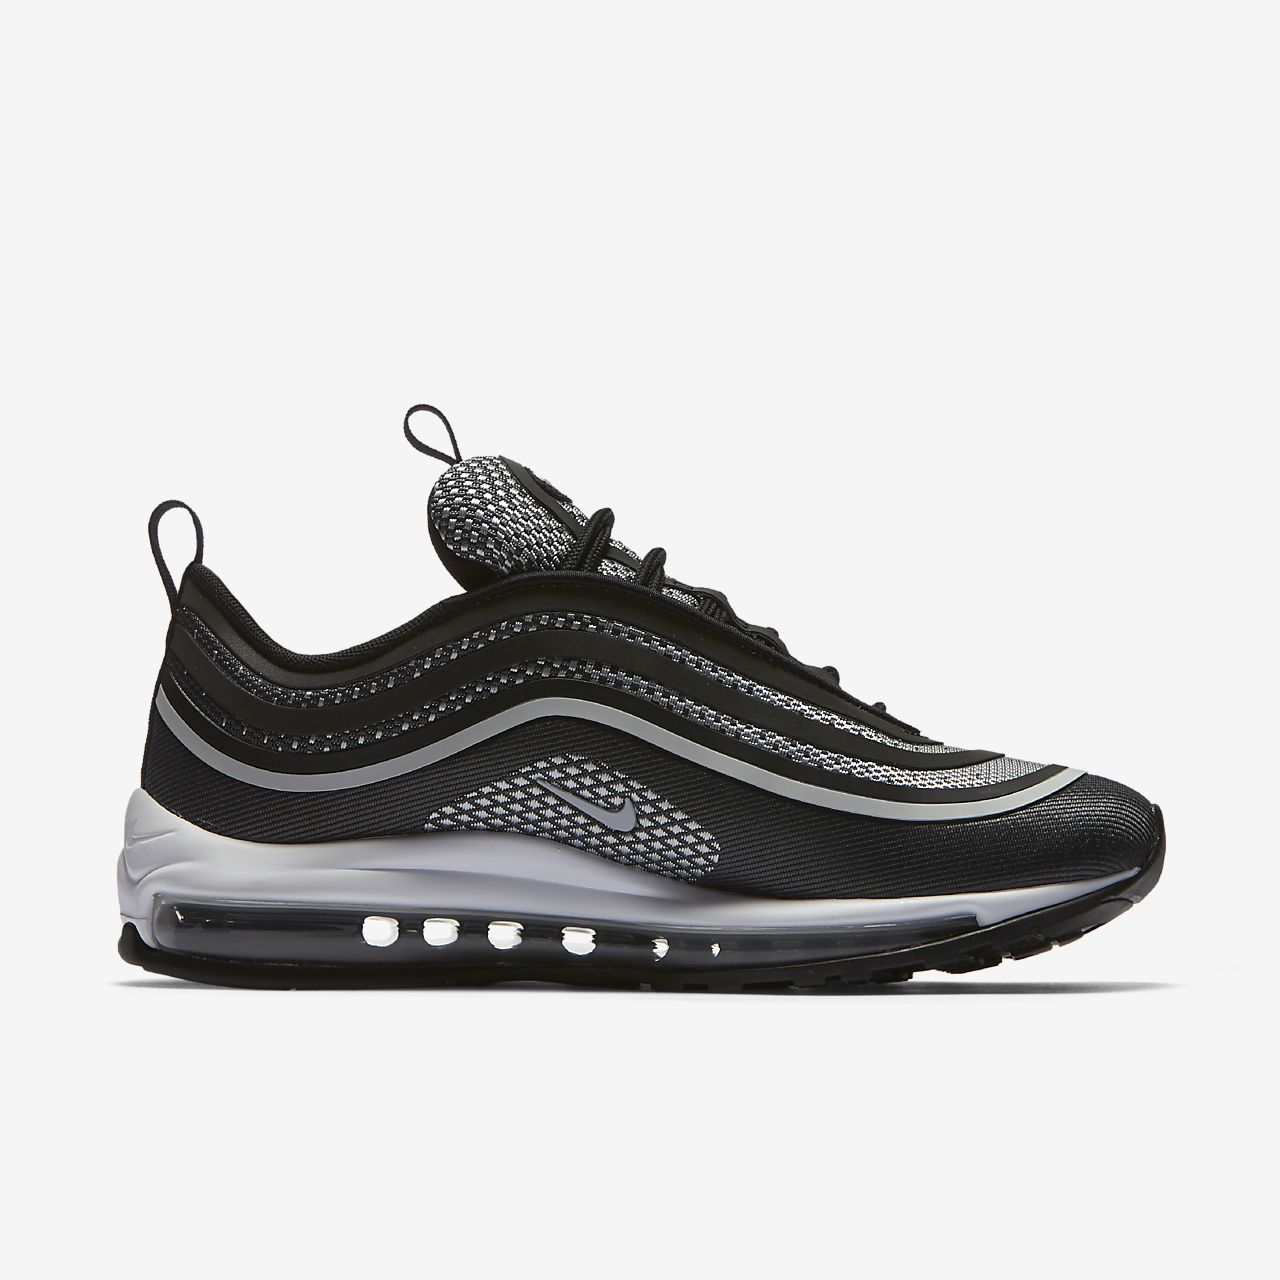 Cheap Nike air max 97 for sale Cheap Nike air max 97 sl University of Guam